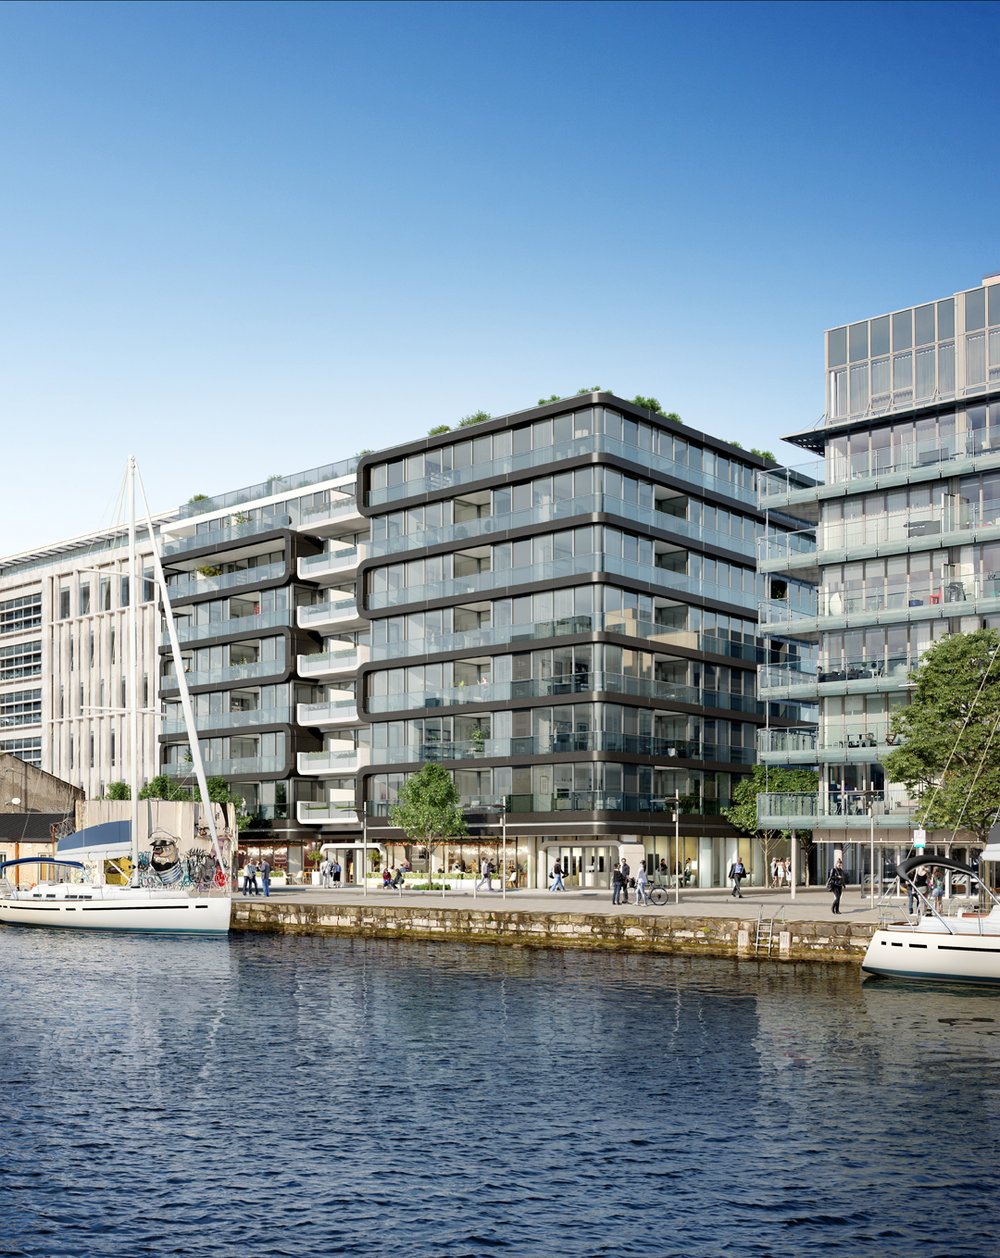 Hanover Quay Hanover Quay is a new luxury contemporary residential apartment building Located in the Dublin Docklands in close proximity to Grand Canal Square.